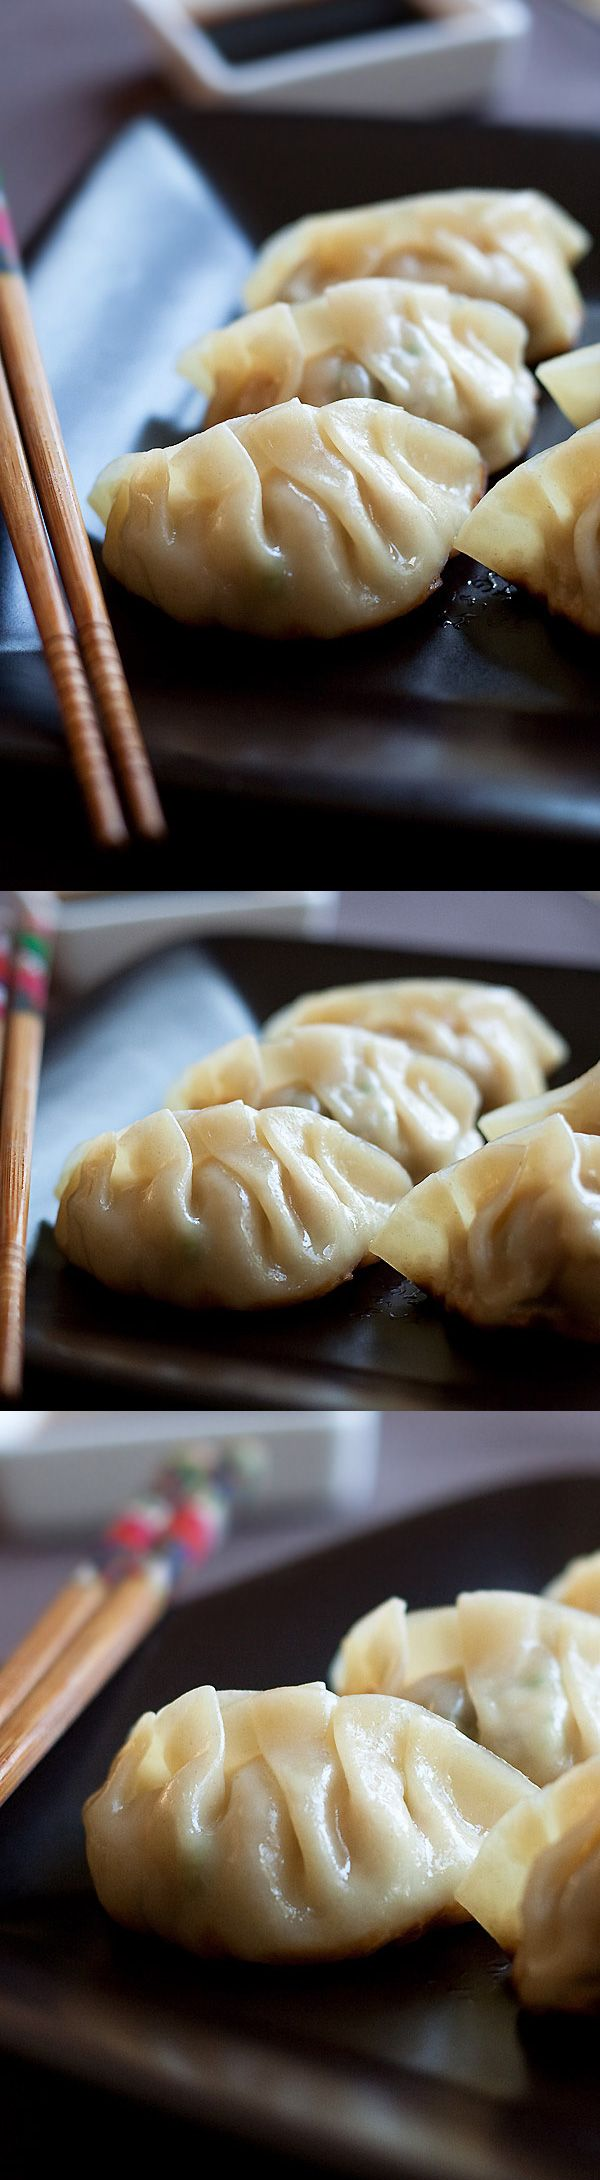 Gyoza Recipe – Gyoza are Japanese dumplings. Learn how to make the best gyoza with this quick & easy recipe that takes only 30 minutes | rasamalaysia.com